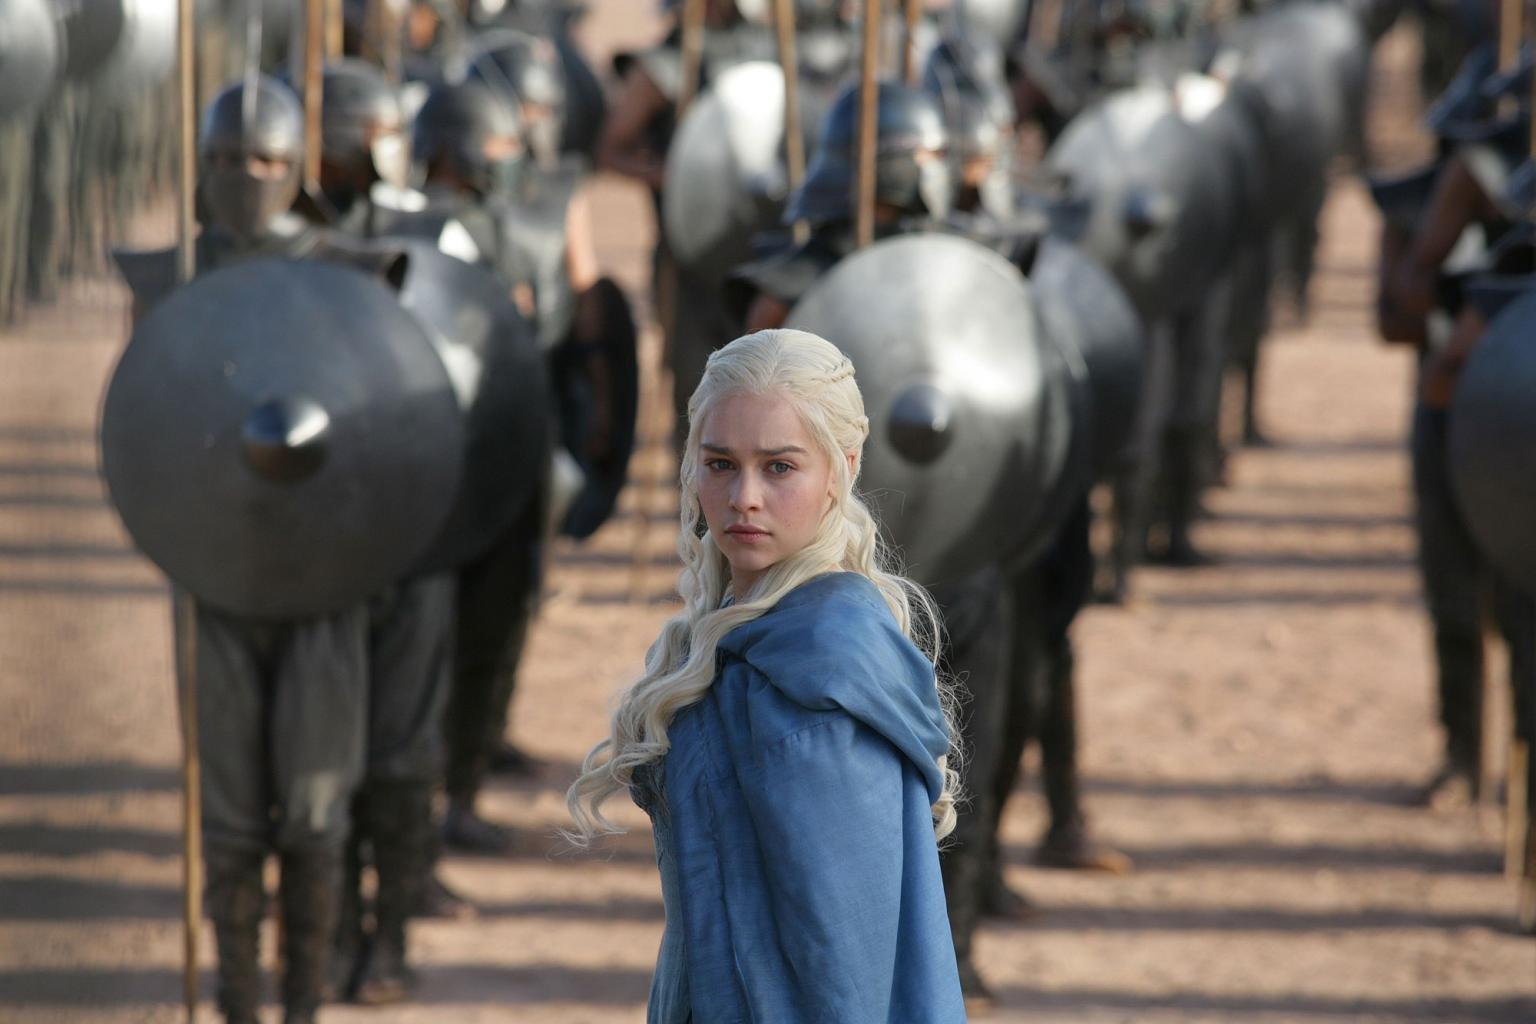 Game of Thrones Star Emilia Clarke Says Sexism in Hollywood Is Like 'Dealing with Racism'